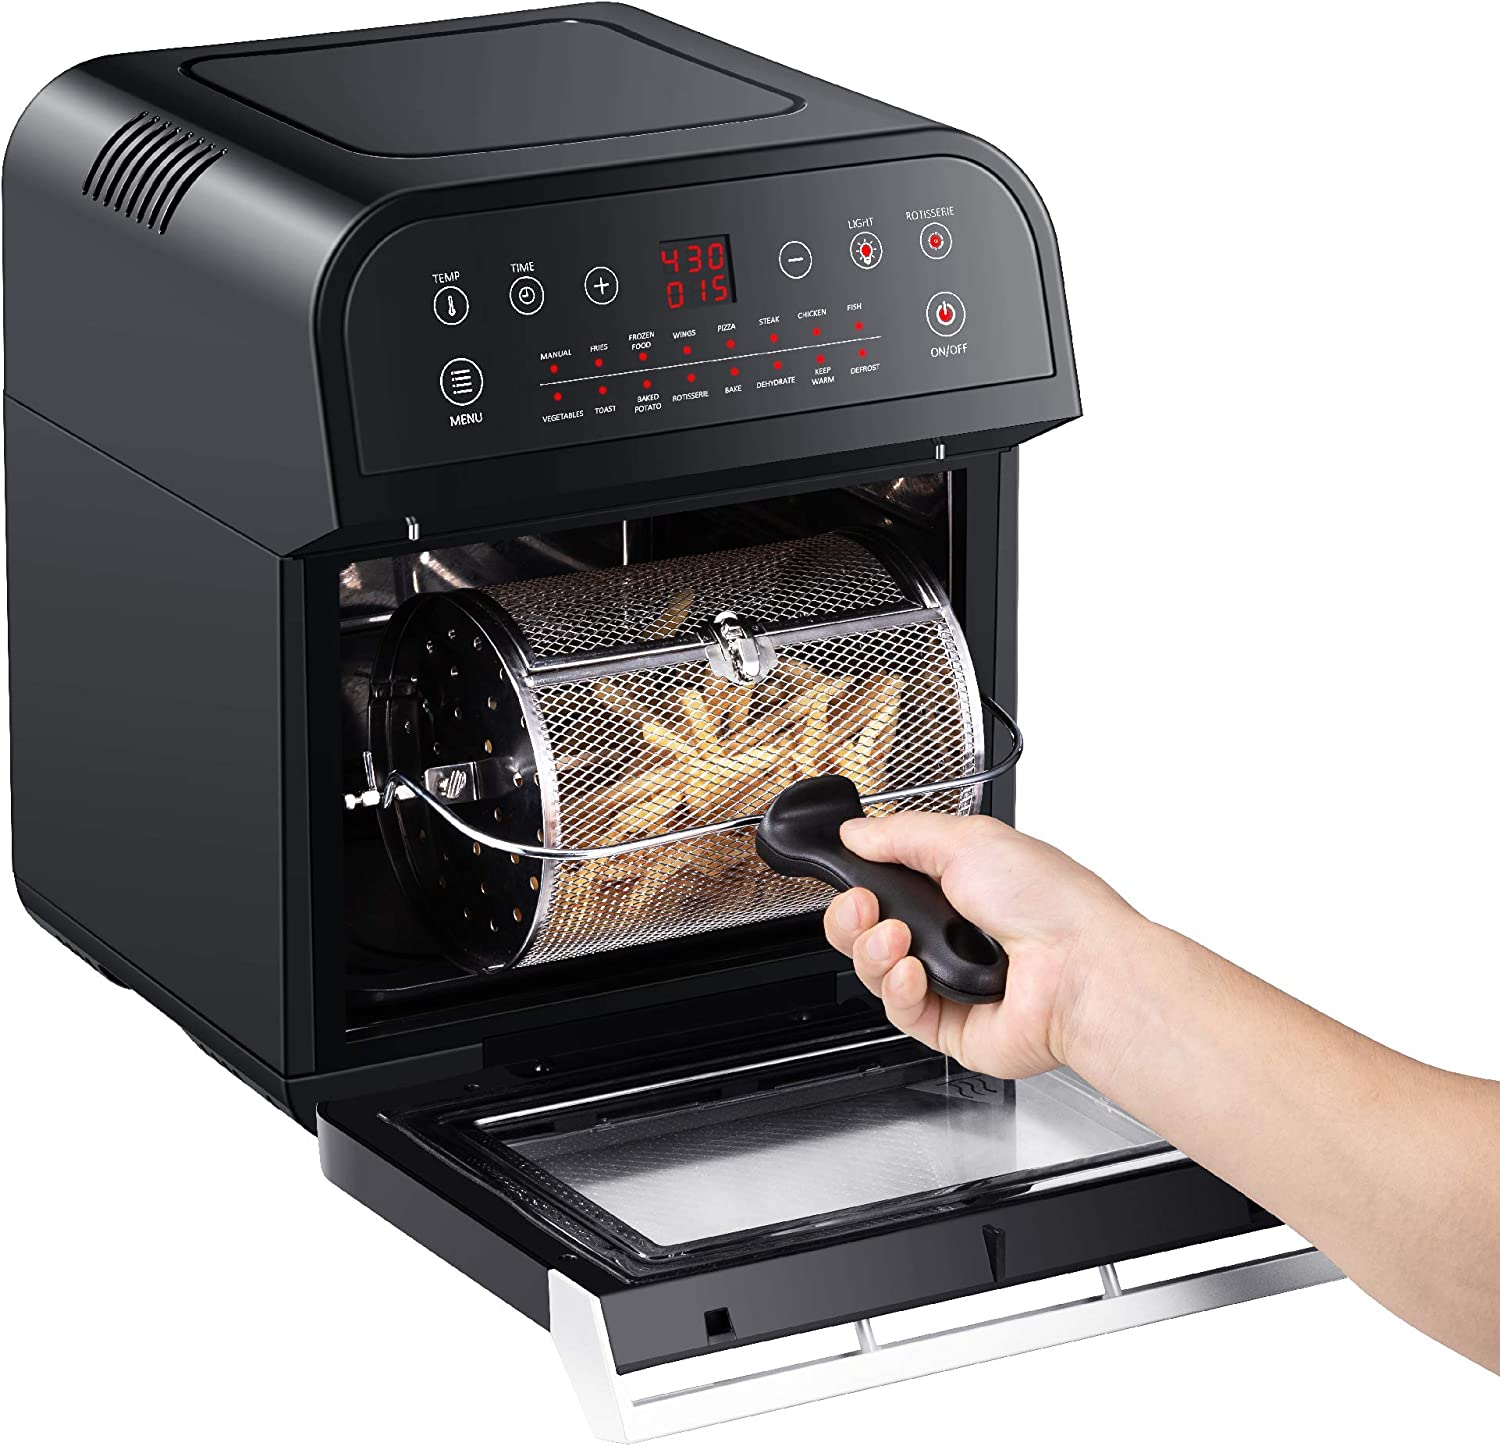 GoWISE USA GW44800-O Deluxe 12.7-Quarts 15-in-1 Air Fryer